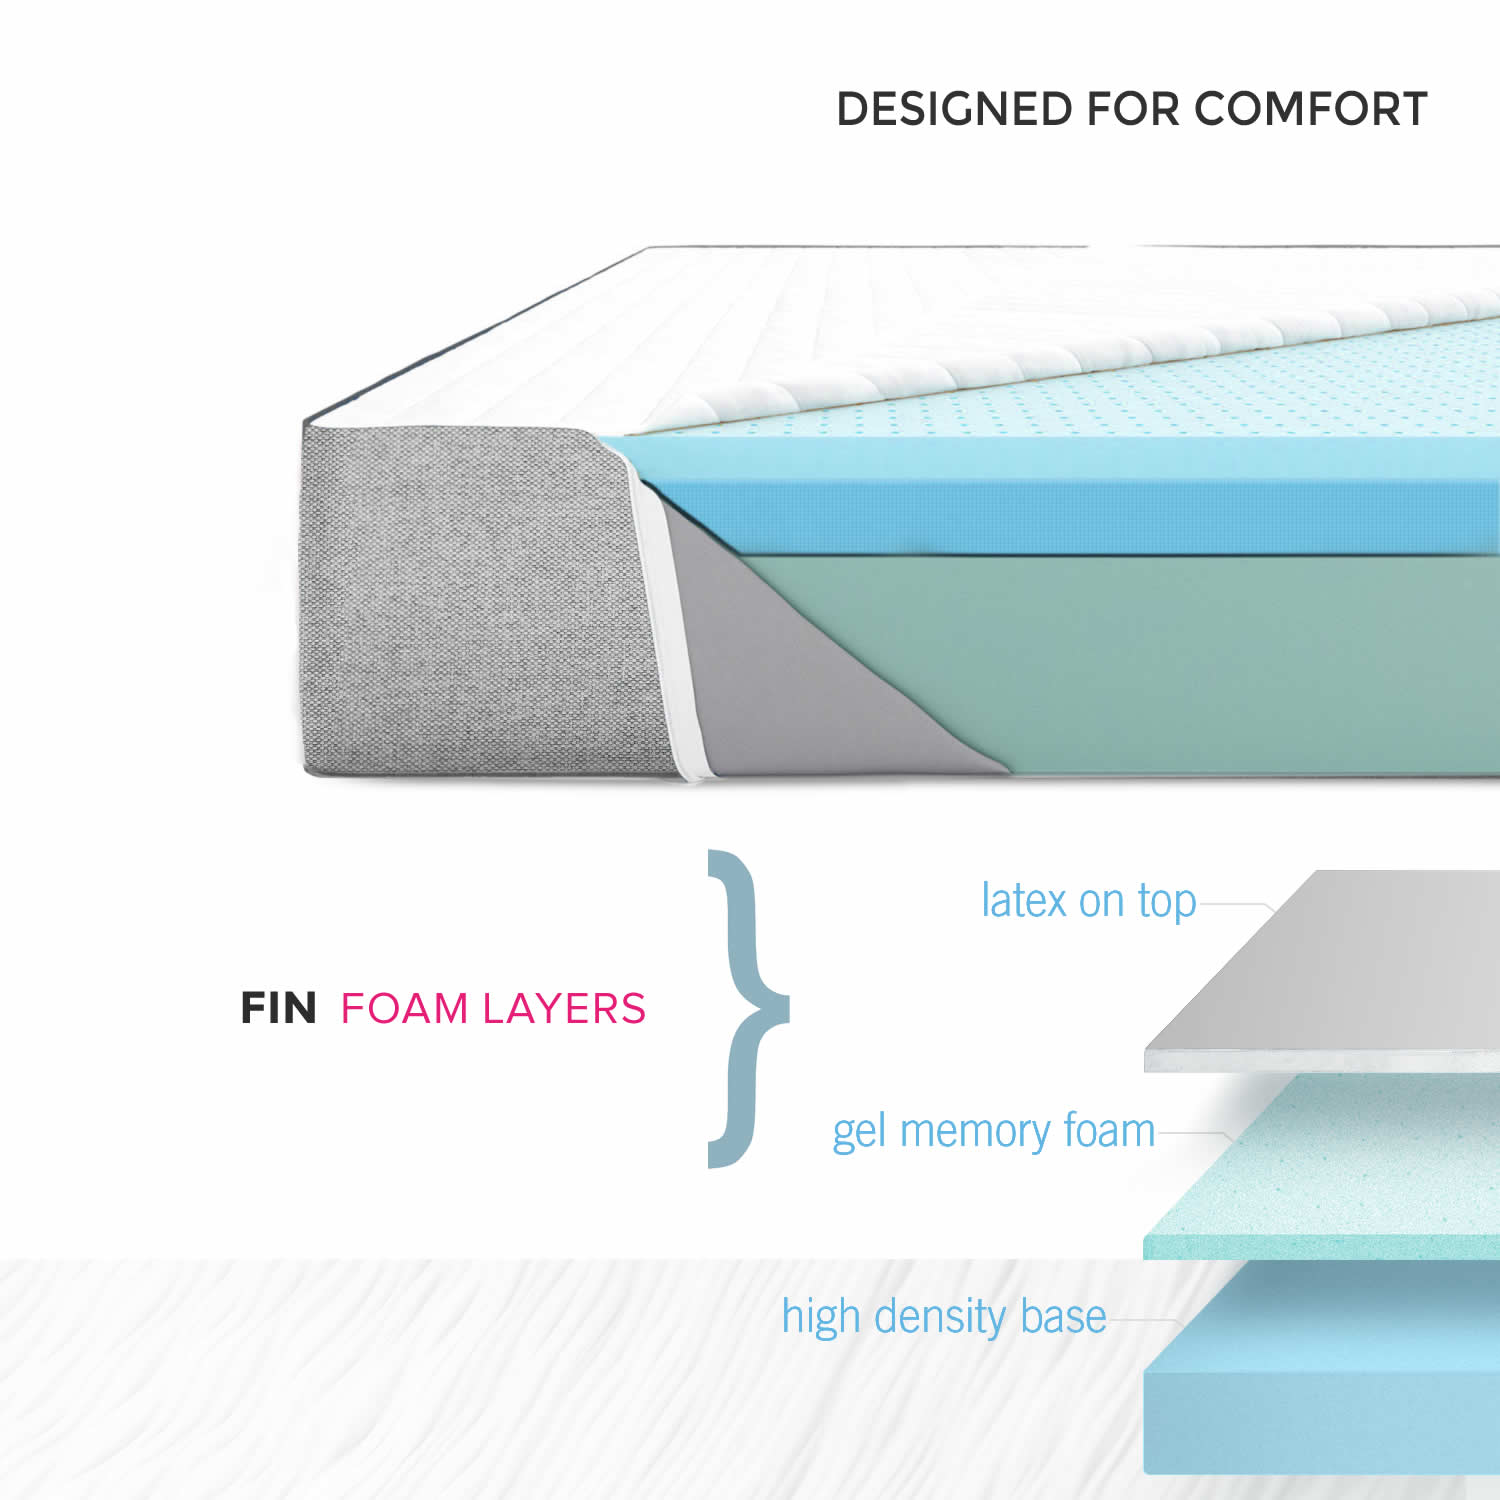 The recent foam technologies that go into making up the layer construction of the newer foam mattress receive a much higher satisfaction rating than their spring counterpart mattress. A good example is the  FIN 10 mattress at  getmyfin.com